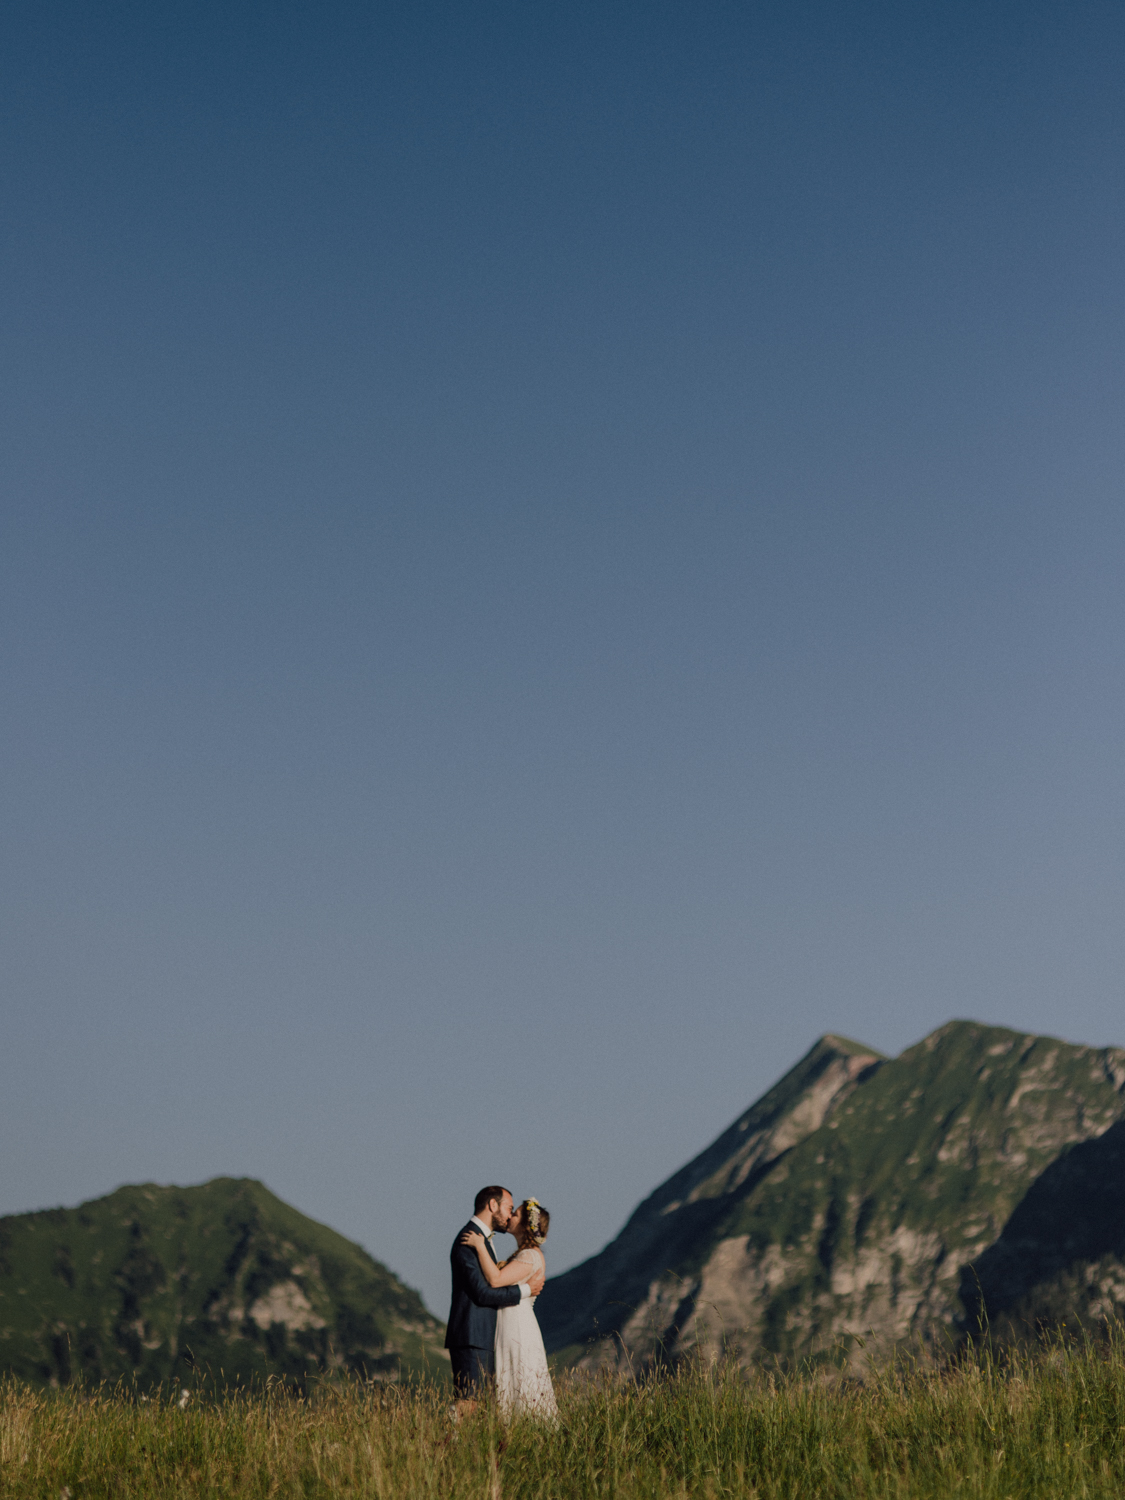 capyture-wedding-photographer-destination-elopement-switzerland-175